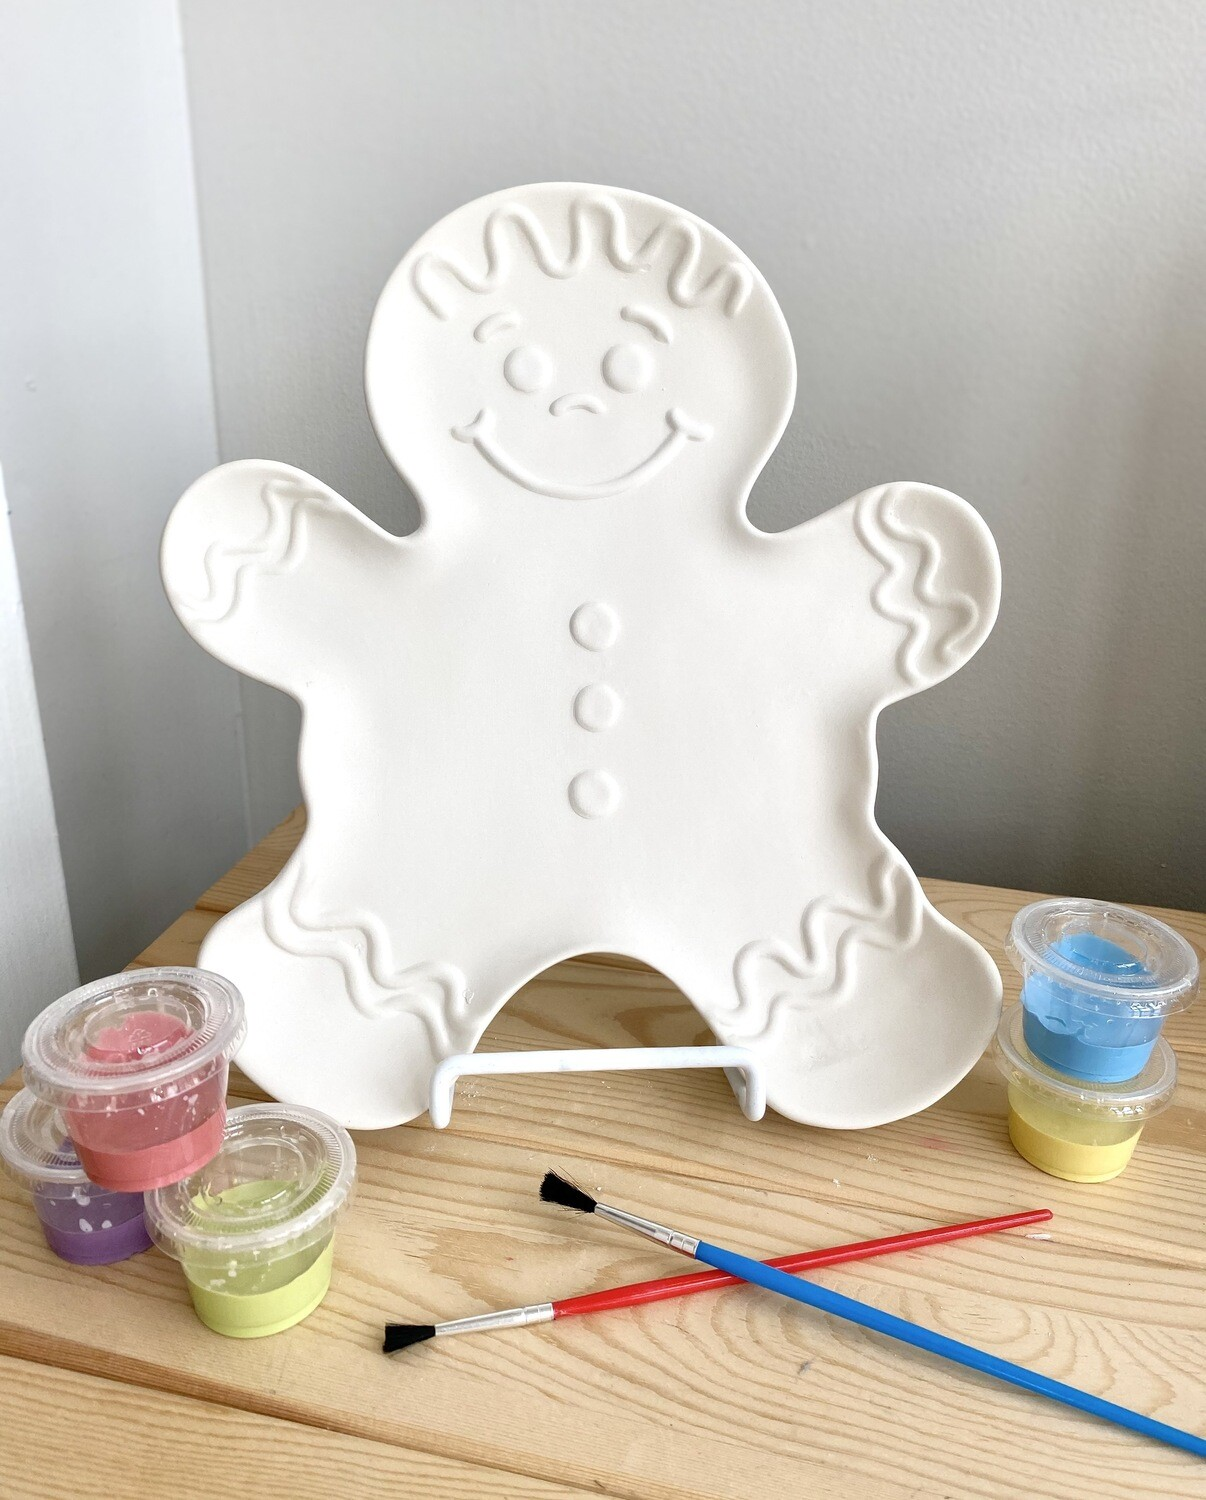 Take Home Gingerbread Man Plate with Glazes- Pick Up Curbside